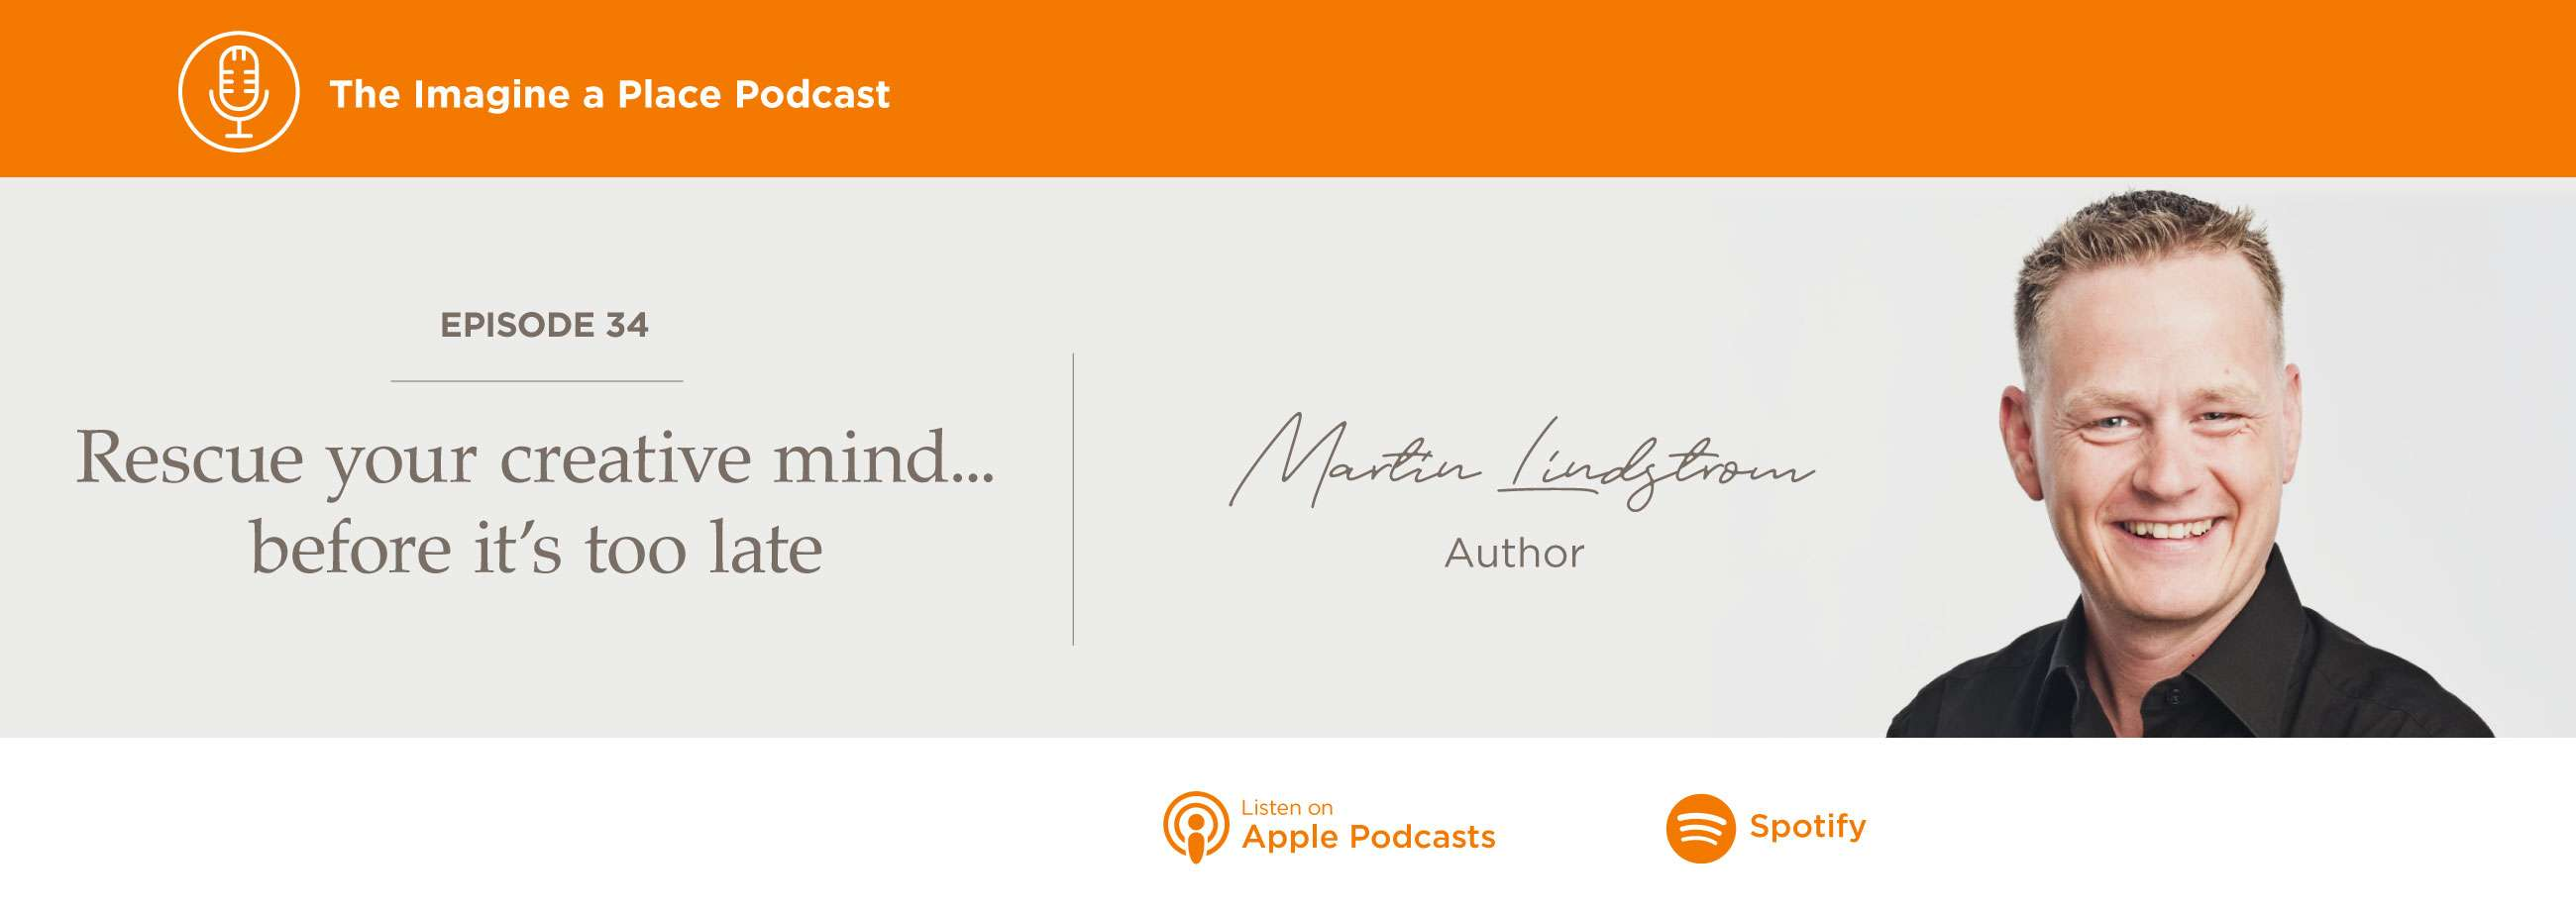 Imagine a Place Podcast with Martin Lindstrom